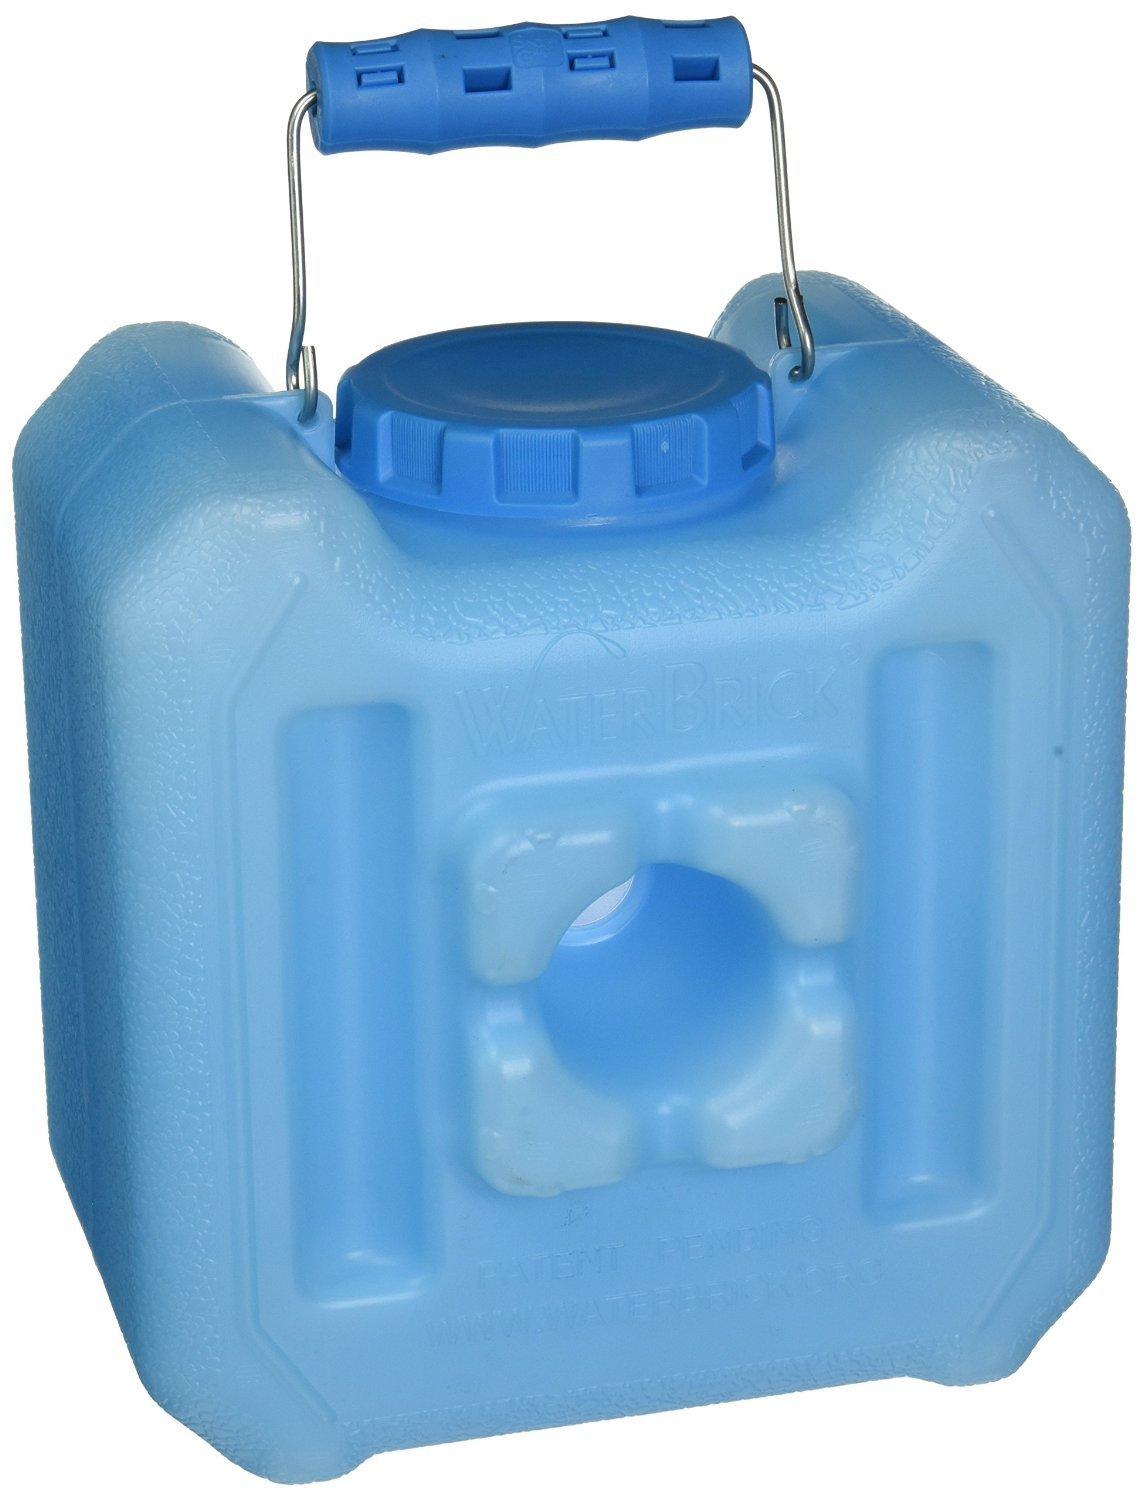 WaterBrick - WATERBRICK-1833-0005 - Emergency Water and Food Storage Containers - 1.6 gal of Liquids/Up to 13 lb of Dry Foods, Blue